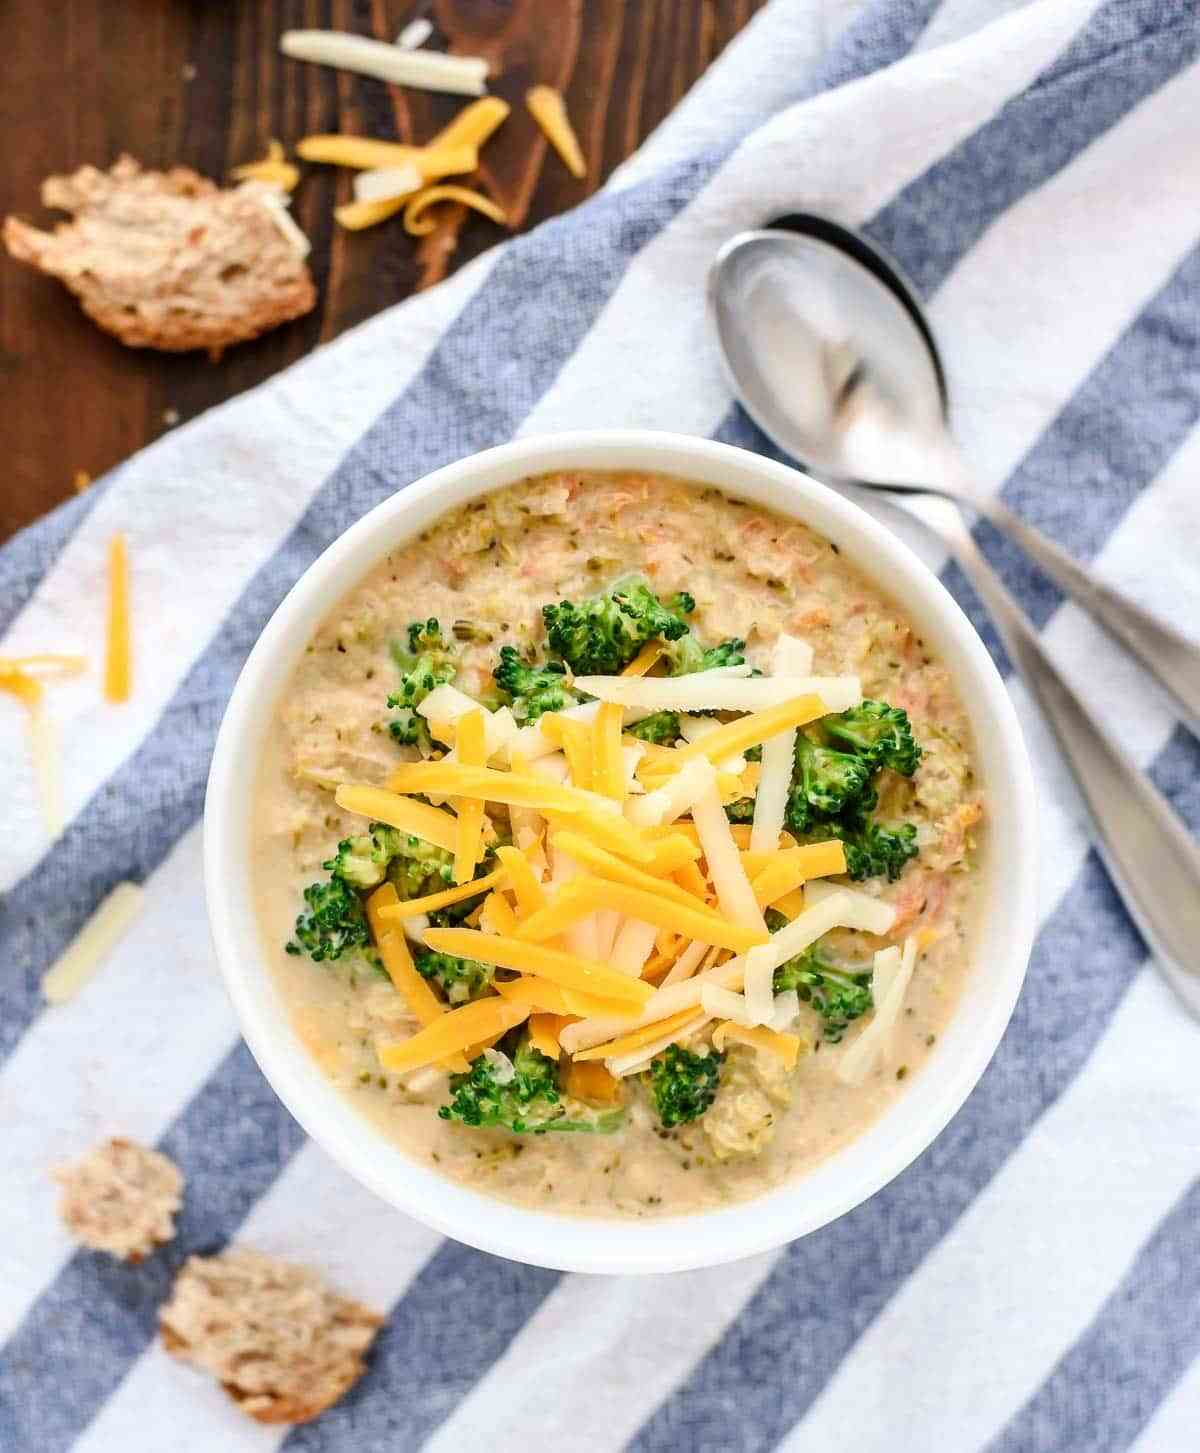 The BEST and EASIEST Slow Cooker Broccoli and Cheese Soup that's even better than Panera's! Made with lots of fresh veggies and cheddar, and it's always a crowd favorite!